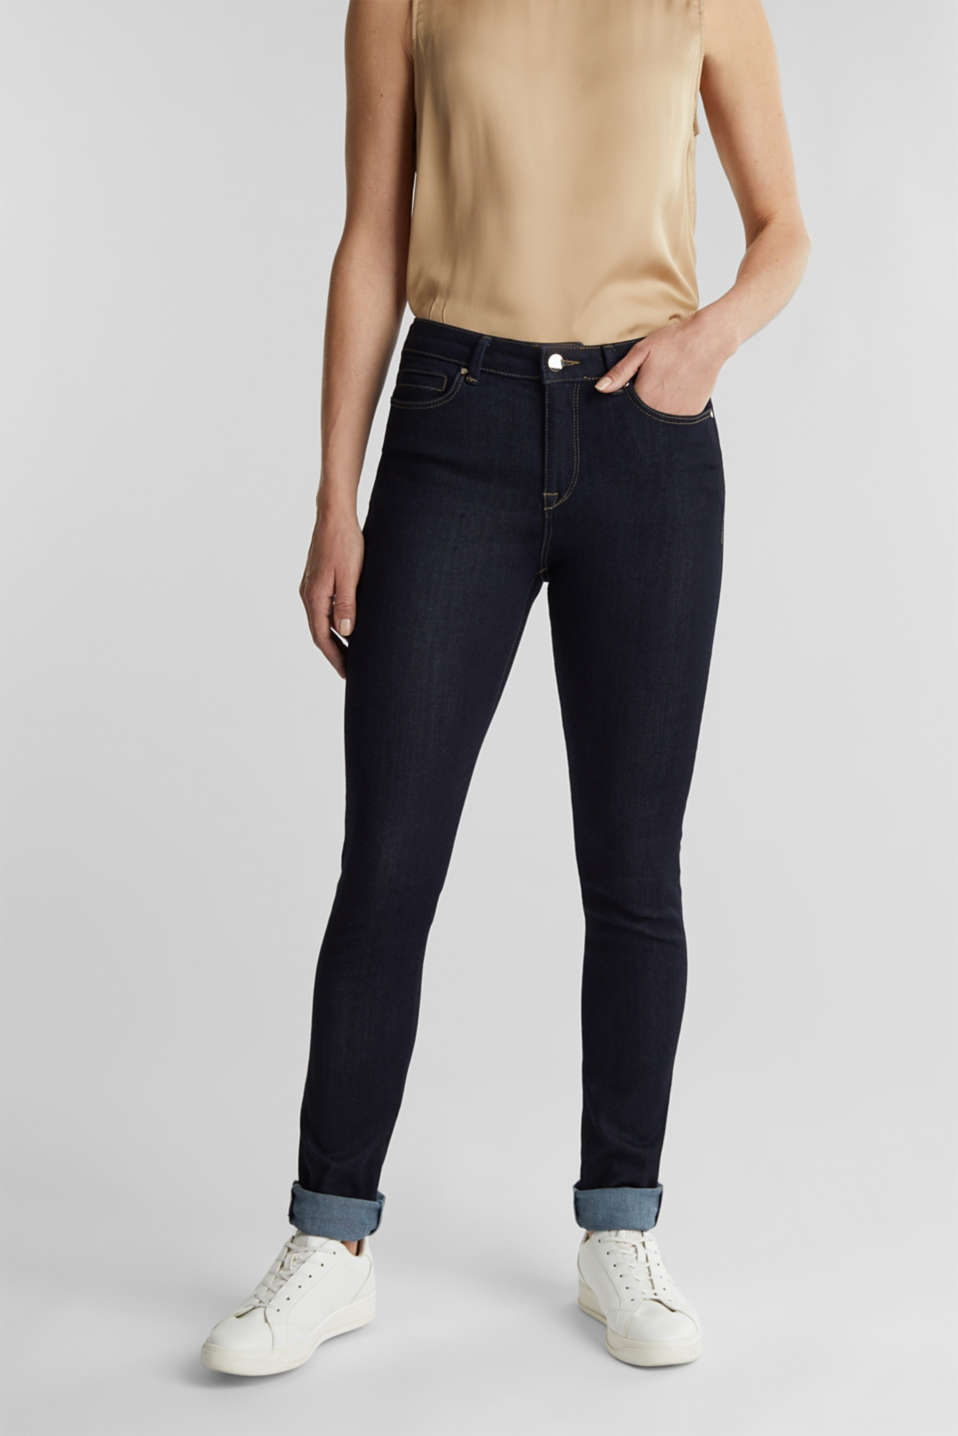 Esprit - Business jeans with organic cotton